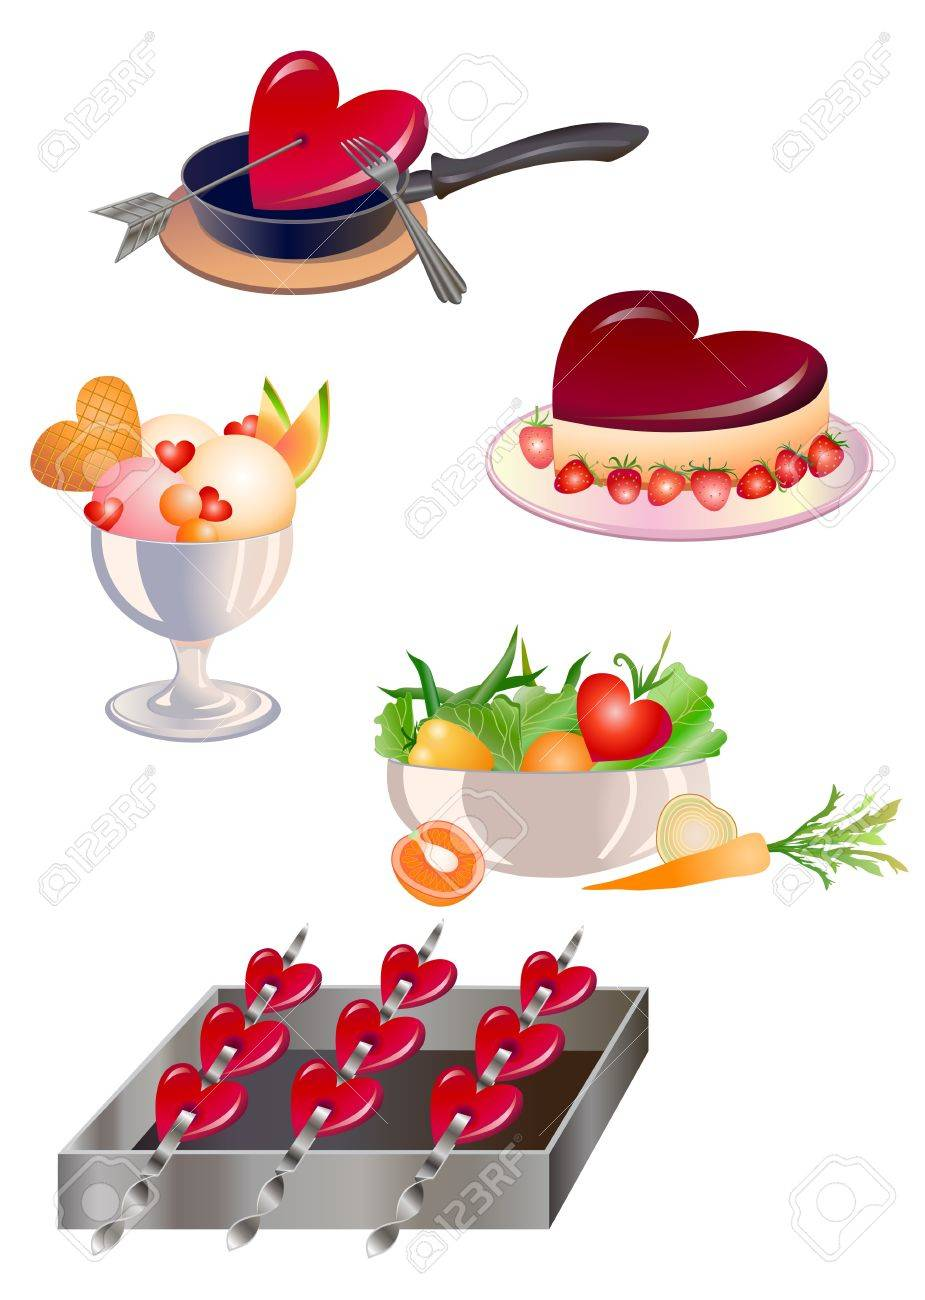 illustration of food design elements for  valentine`s day greeting cards Stock Photo - 12407940